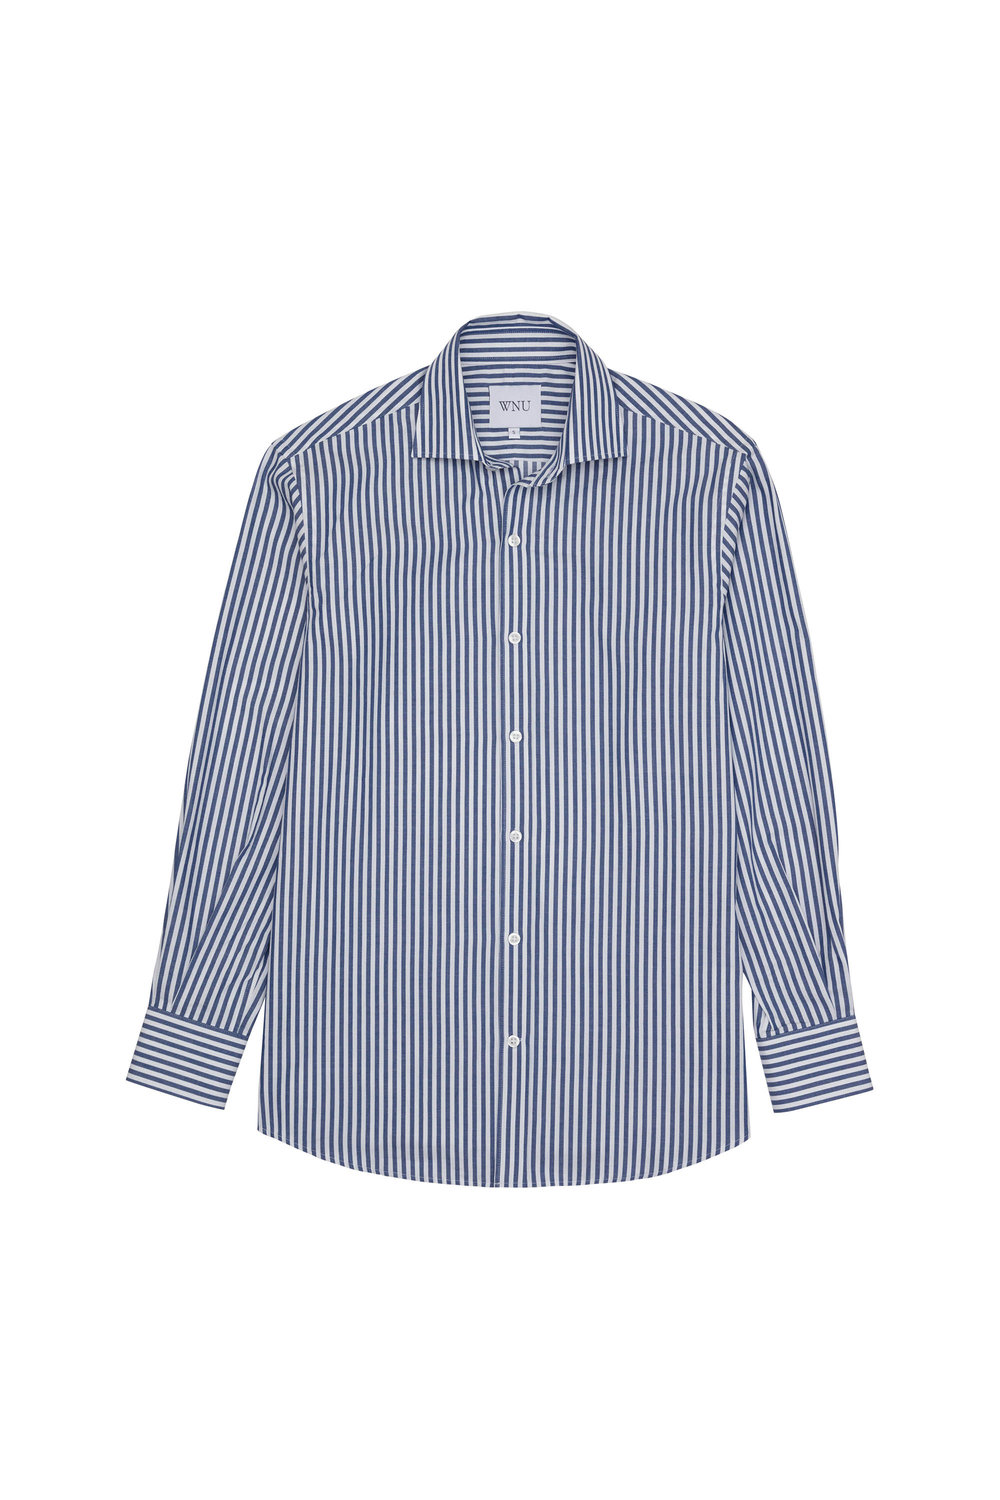 3. Striped With Nothing Underneath shirt, £80